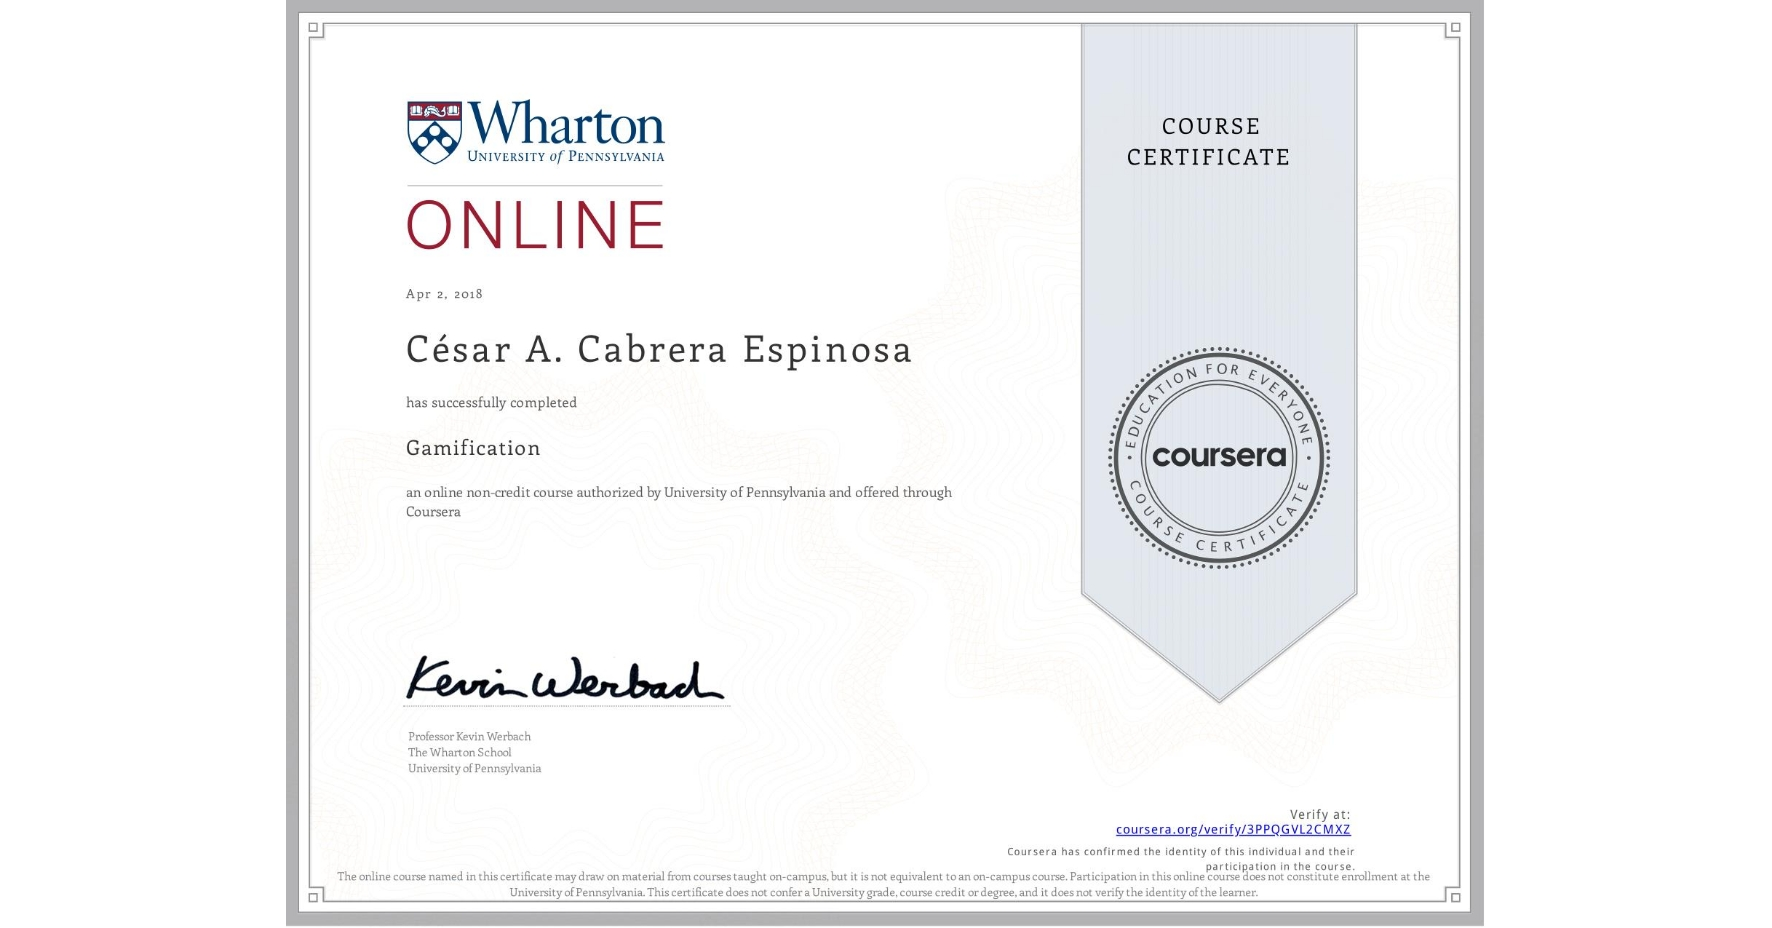 View certificate for César Cabrera Espinosa, Gamification, an online non-credit course authorized by University of Pennsylvania and offered through Coursera